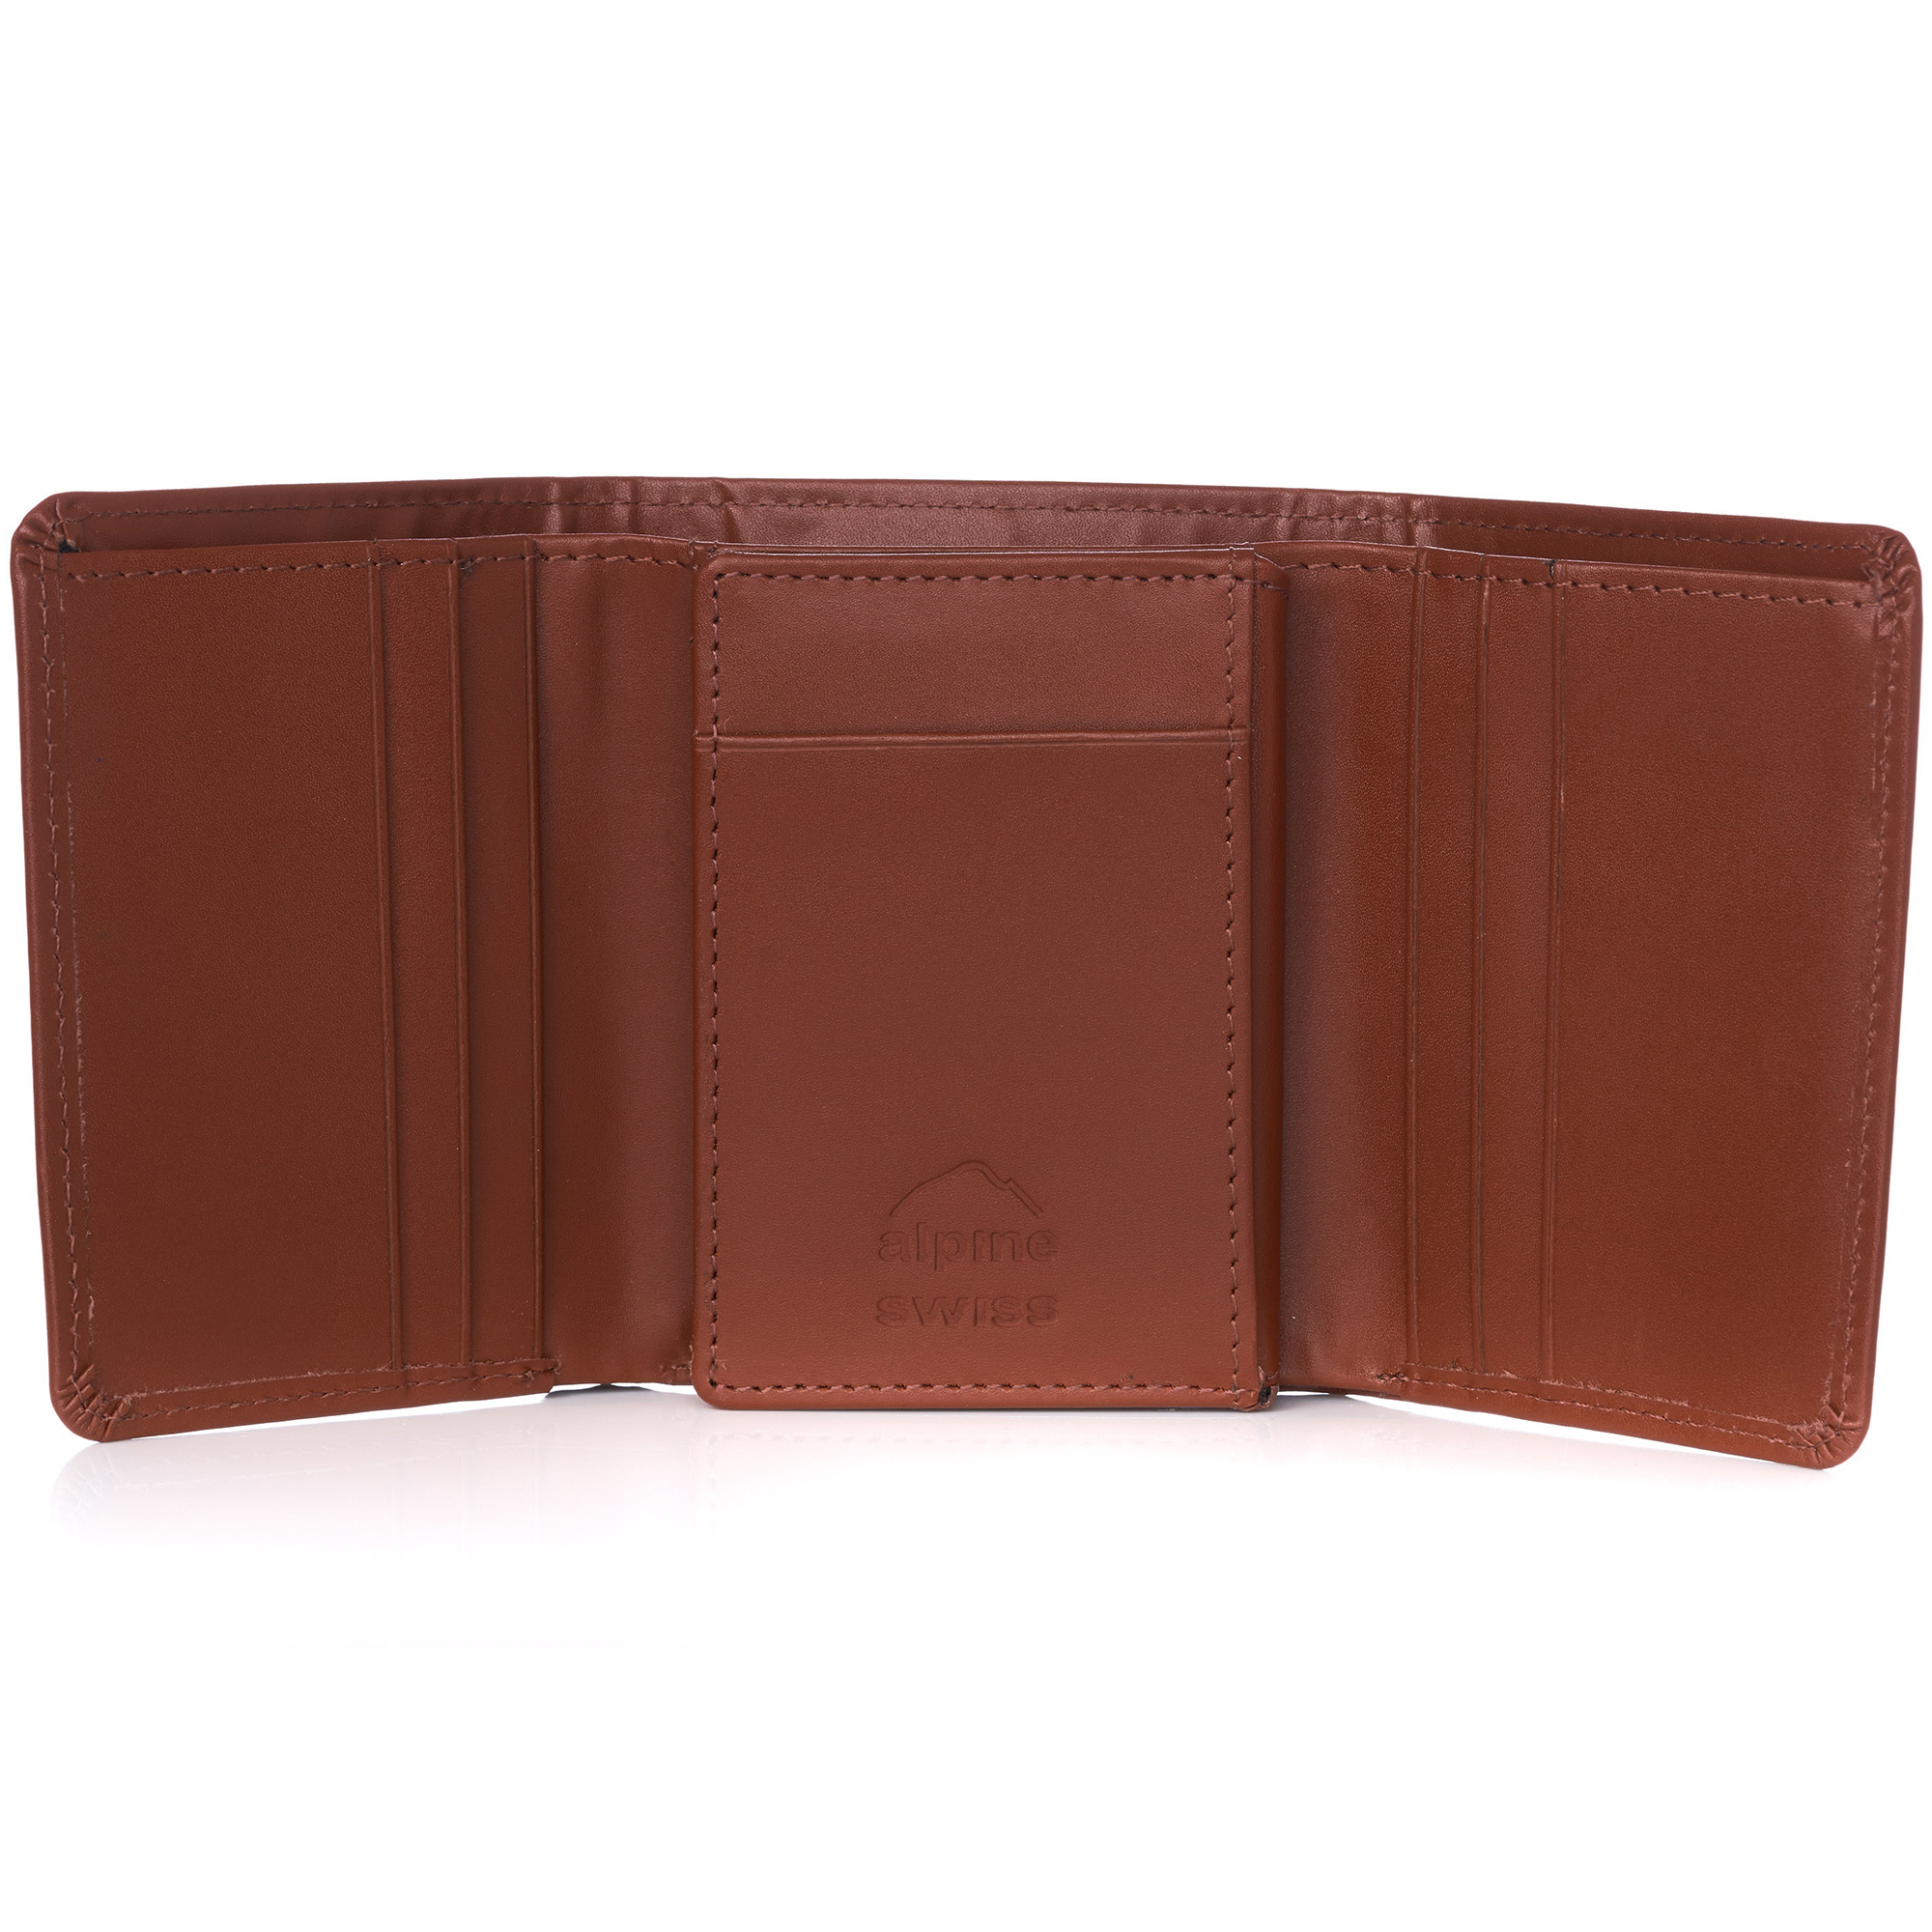 Alpine-Swiss-RFID-Mens-Wallet-Deluxe-Capacity-Trifold-With-Divided-Bill-Section thumbnail 80